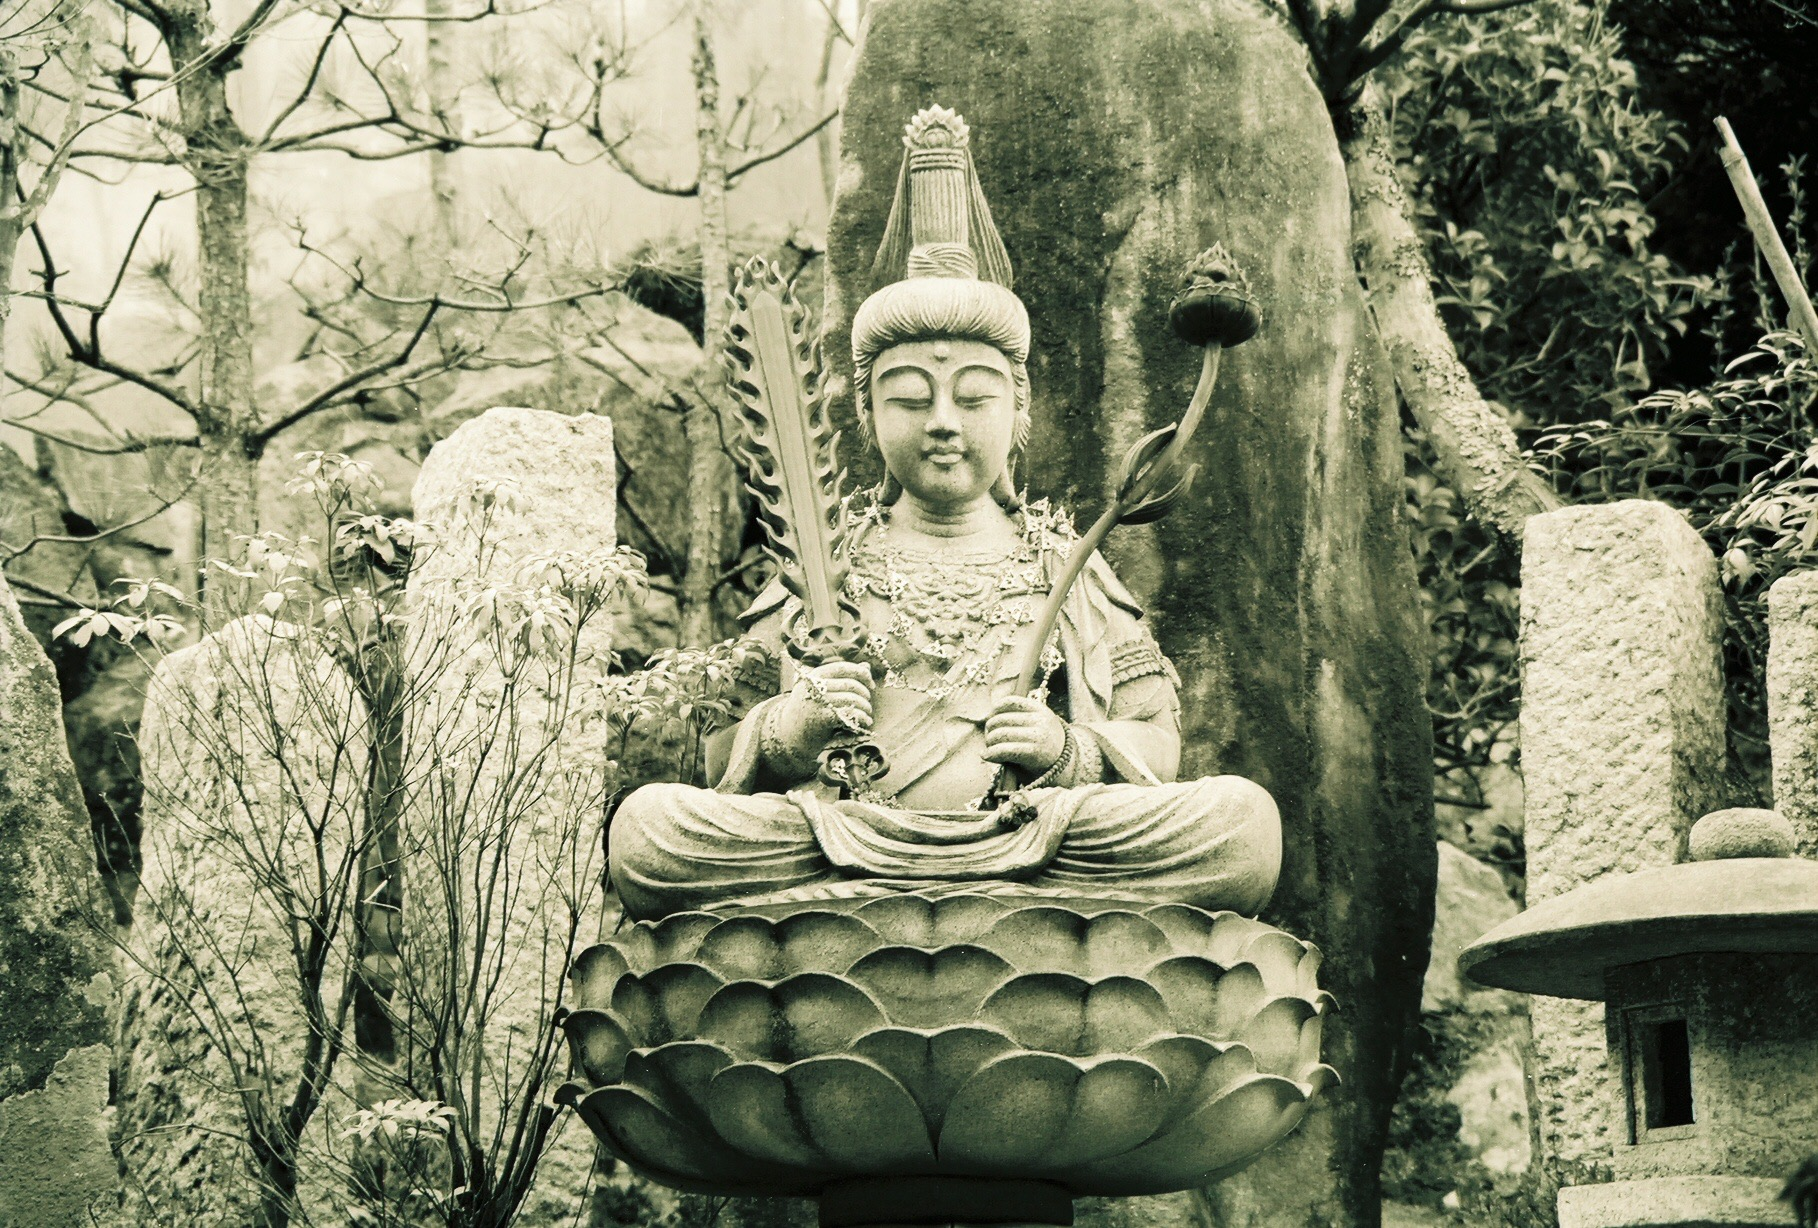 Manjushri keeps compassionate watch with his flaming sword of wisdom (Shikoku, Japan)